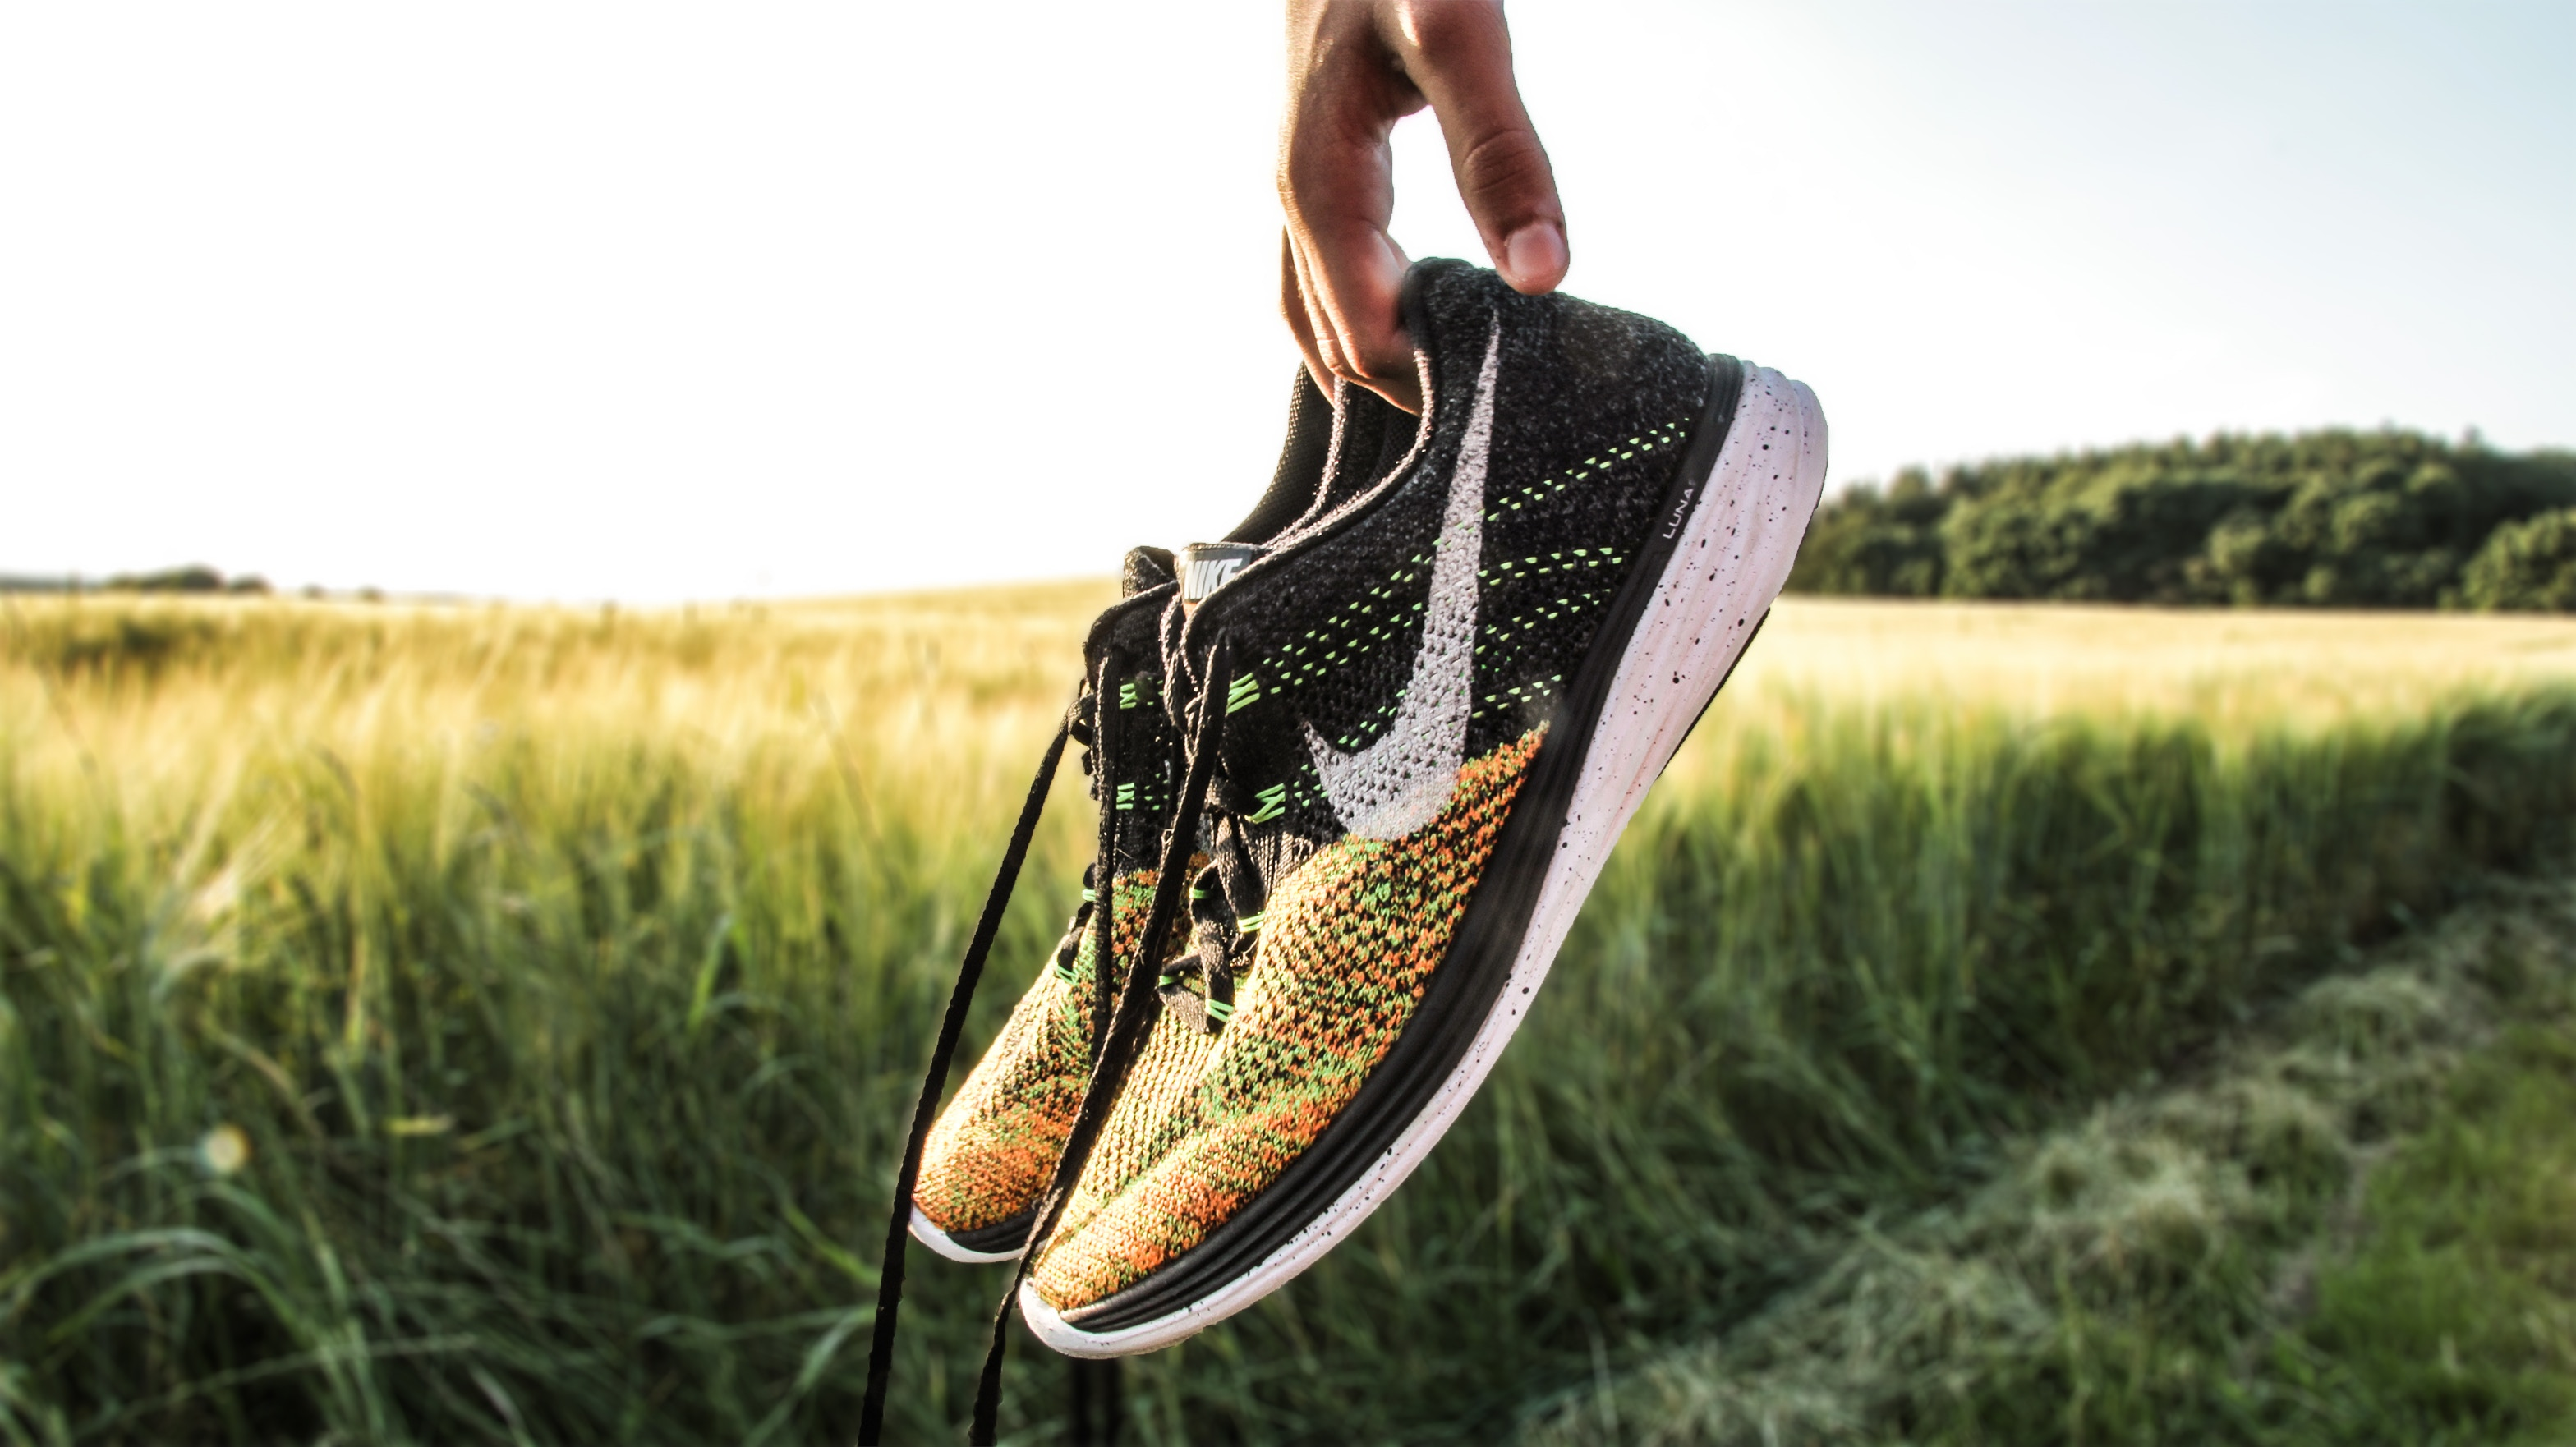 You've checked your running form and your feet. All seems well, yet you still have running pain. Have you checked your shoes? Even if you think you have the most supportive and top-of-the-line running shoes, they may still be giving you problems.